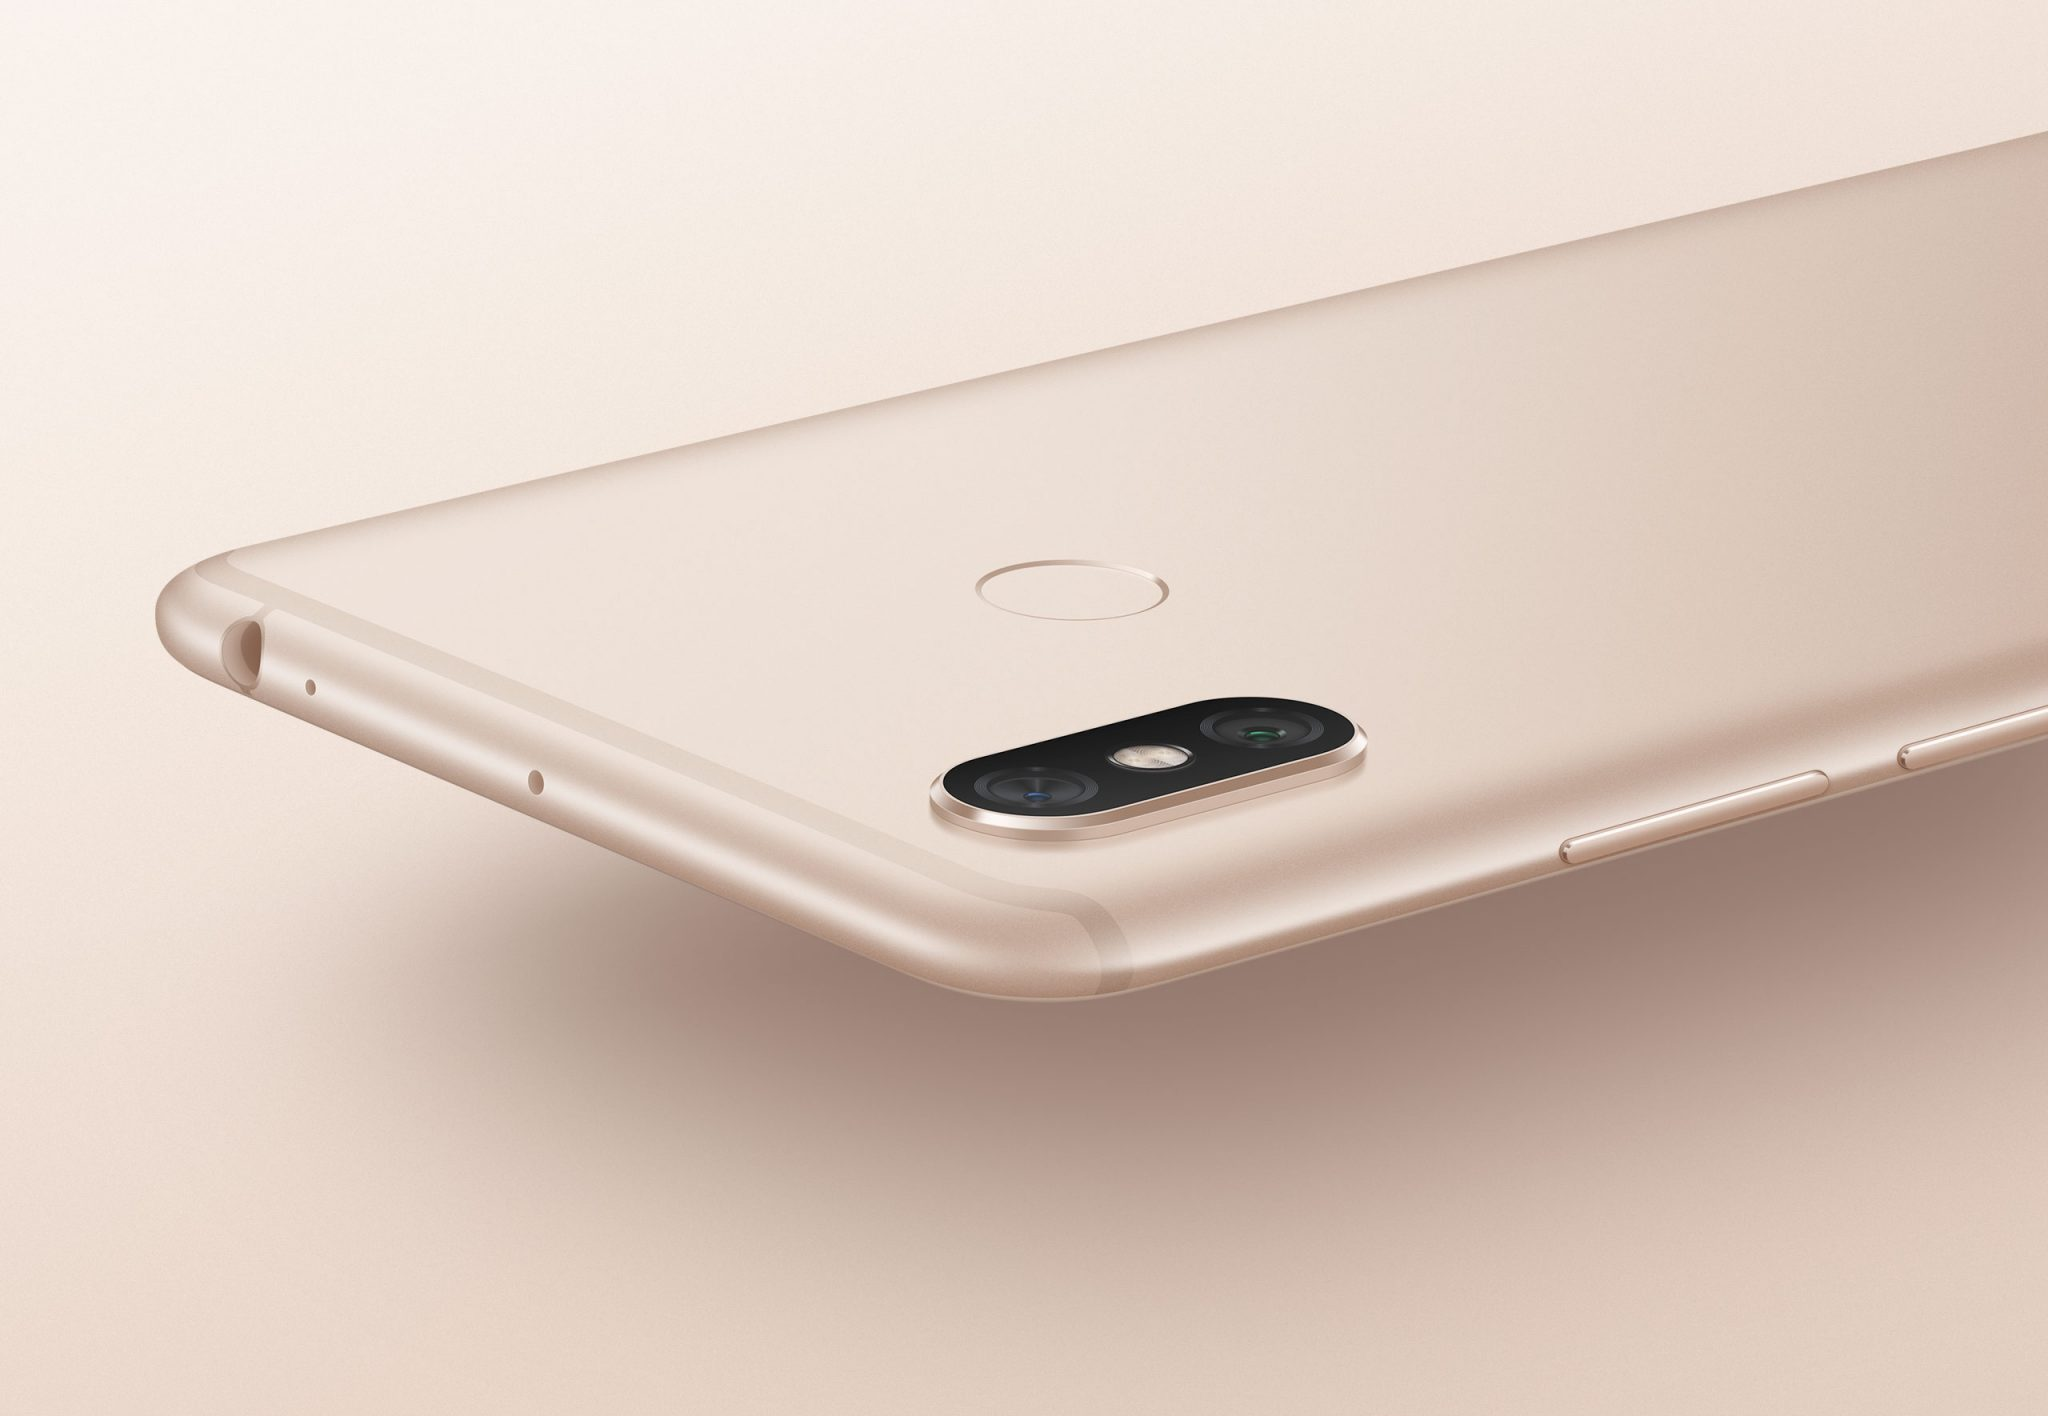 Xiaomi Mi Max 3 launched with Snapdragon 636 & 5,500mAh battery 8